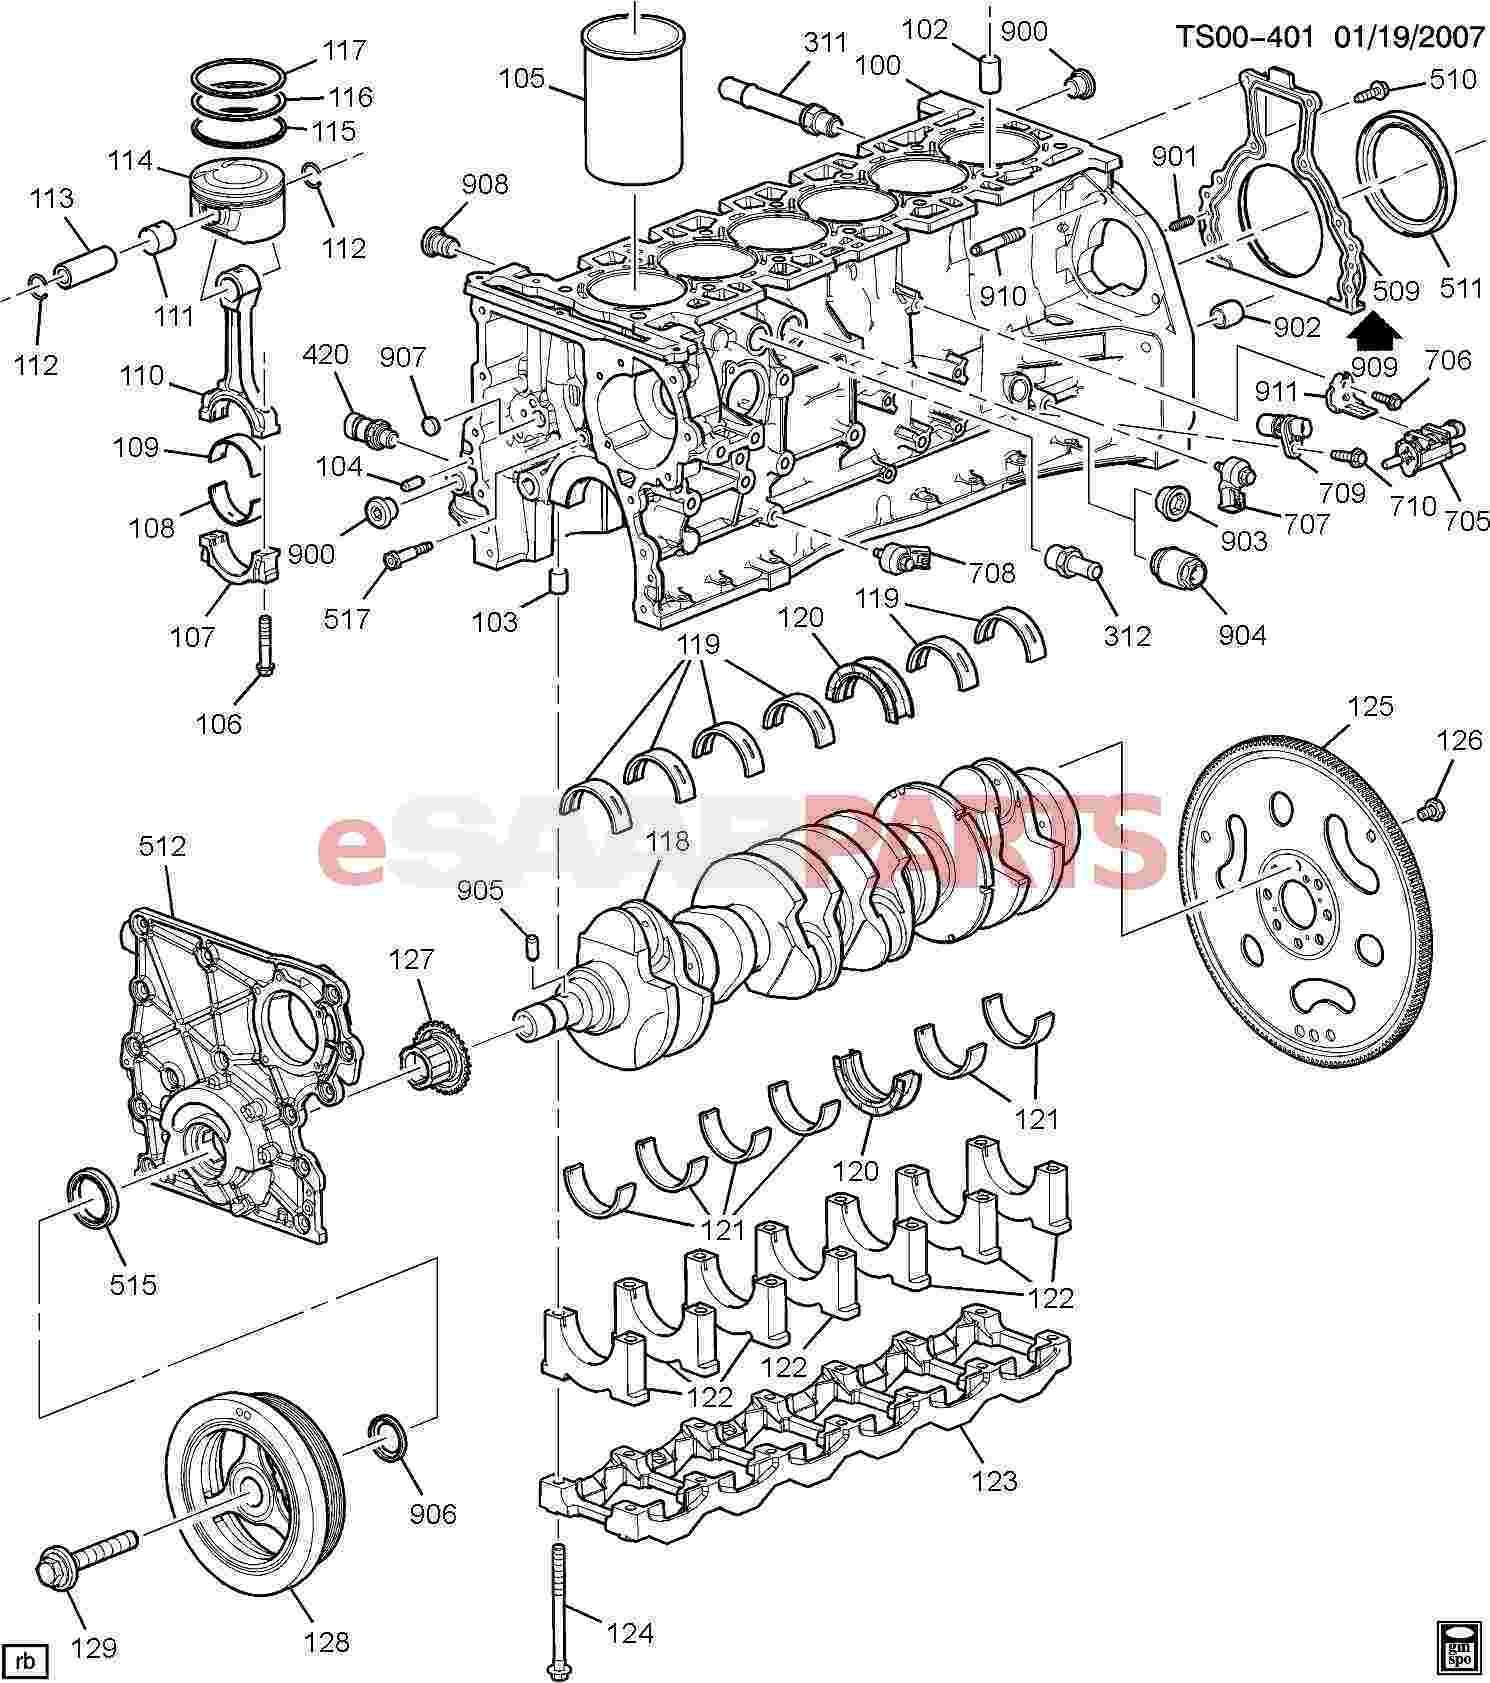 2003 Chevy Trailblazer Transmission Diagram Trusted Wiring 2002 Gmc Envoy Parts On 2004 Fuse Box 2008 Engine Example Electrical U2022